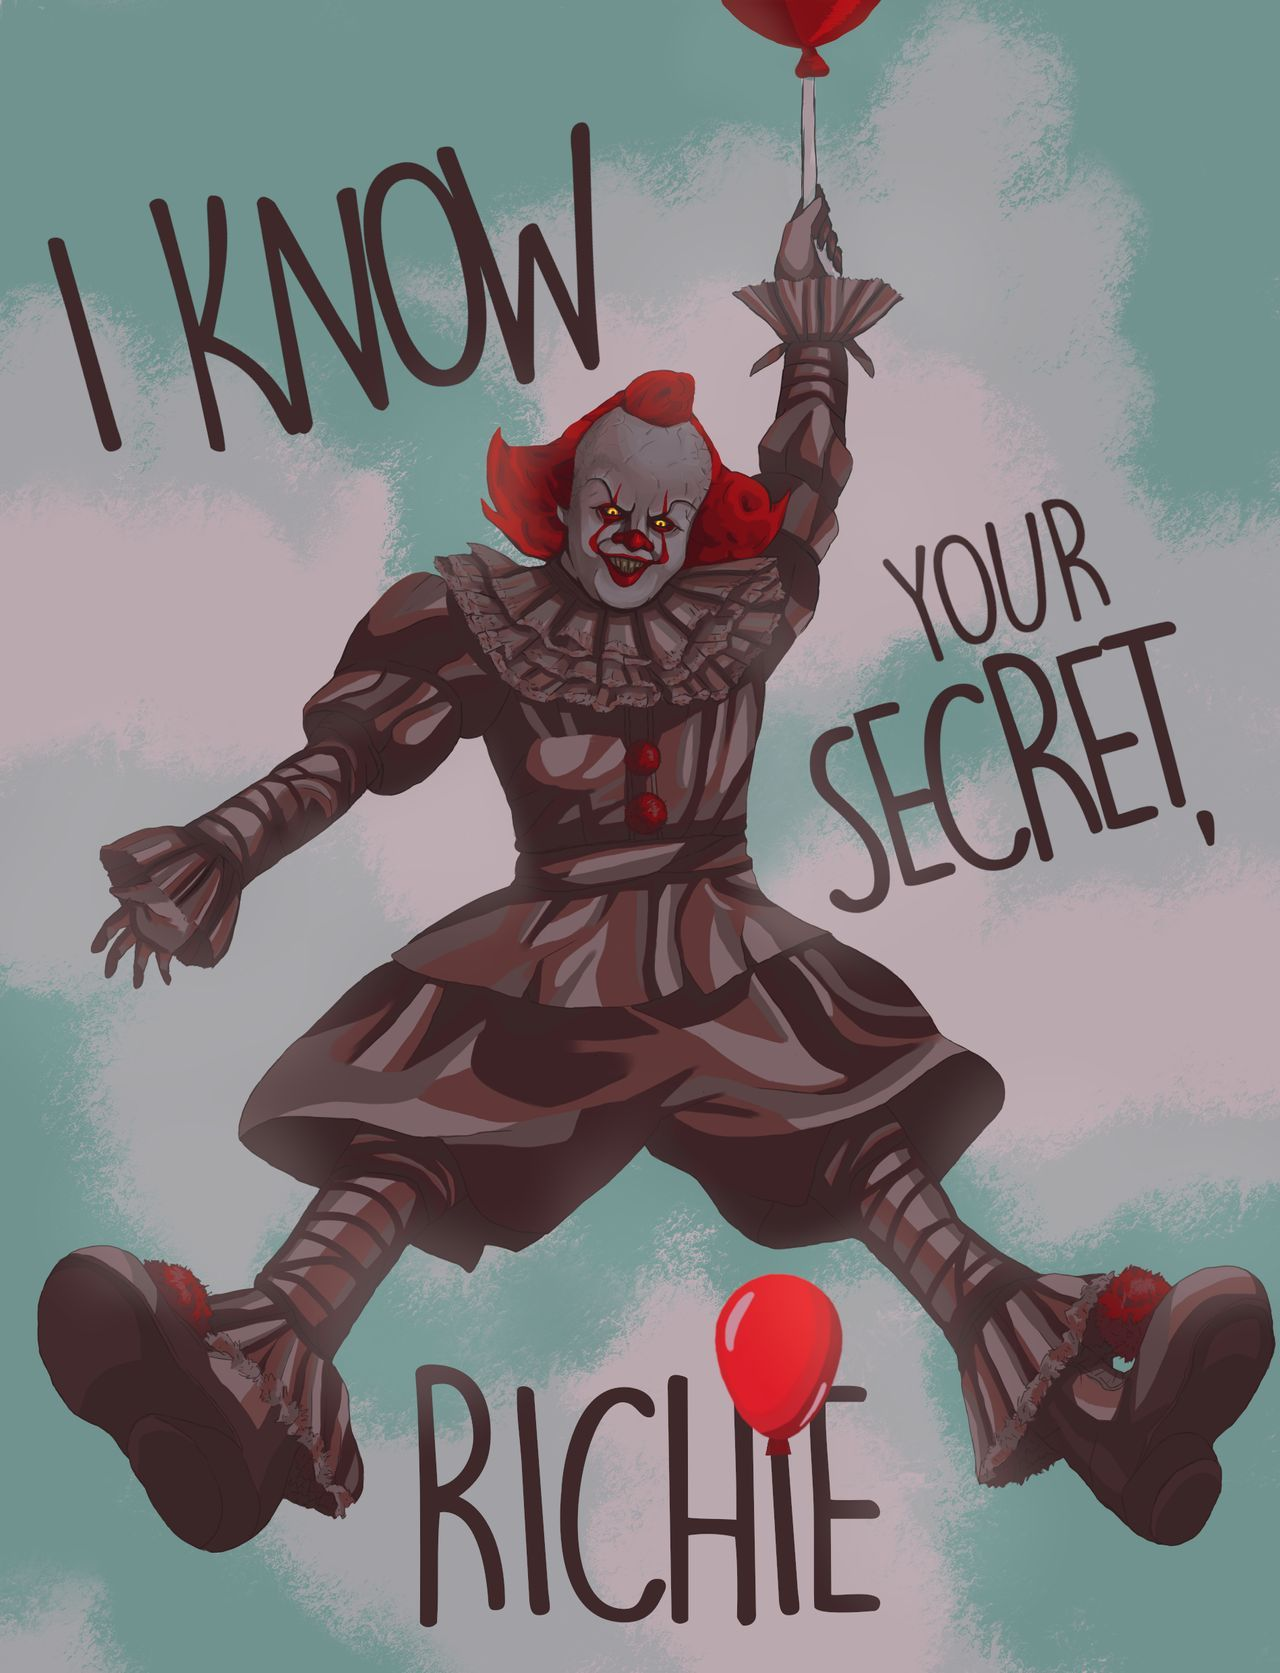 I Know Your Secret By Niinia On Deviantart Pennywise The Dancing Clown Horror Movie Icons Pennywise The Clown